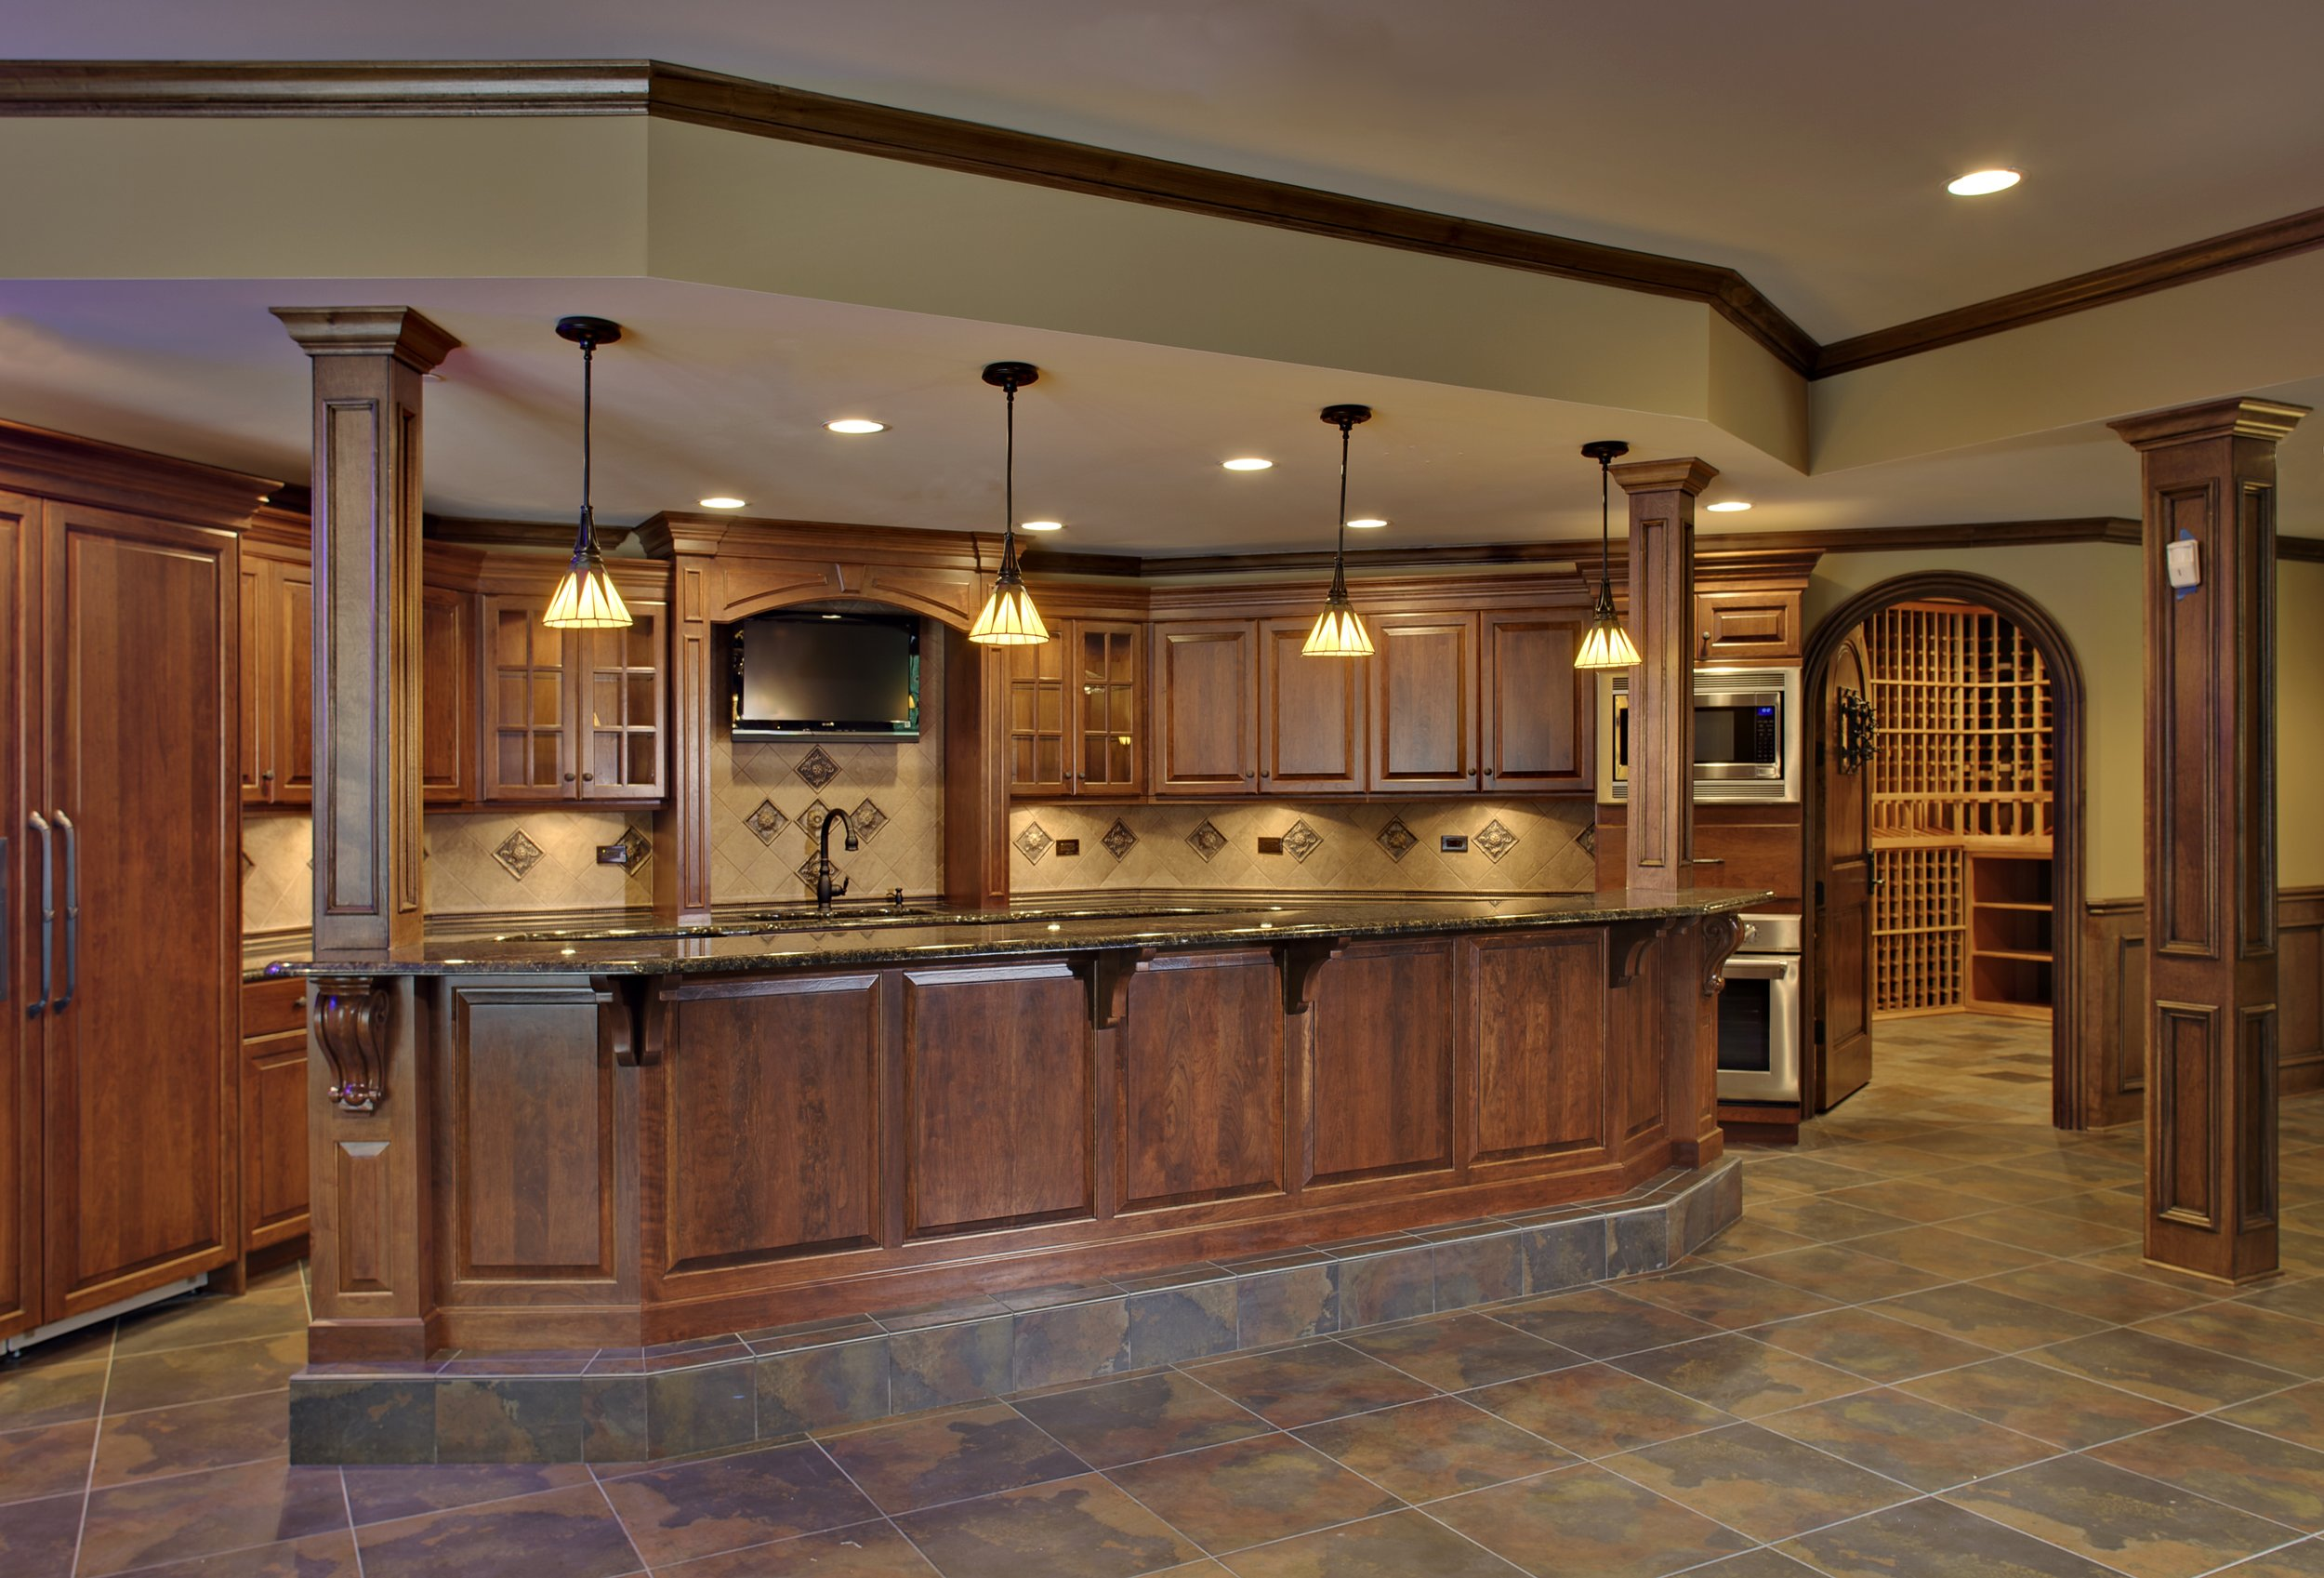 HI END FINISHED BASEMENT WITH WINE CELLER (WITH CURVED DOOR) & CUSTOM FULL KITCHEN BAR IN OAK BROOK IL.